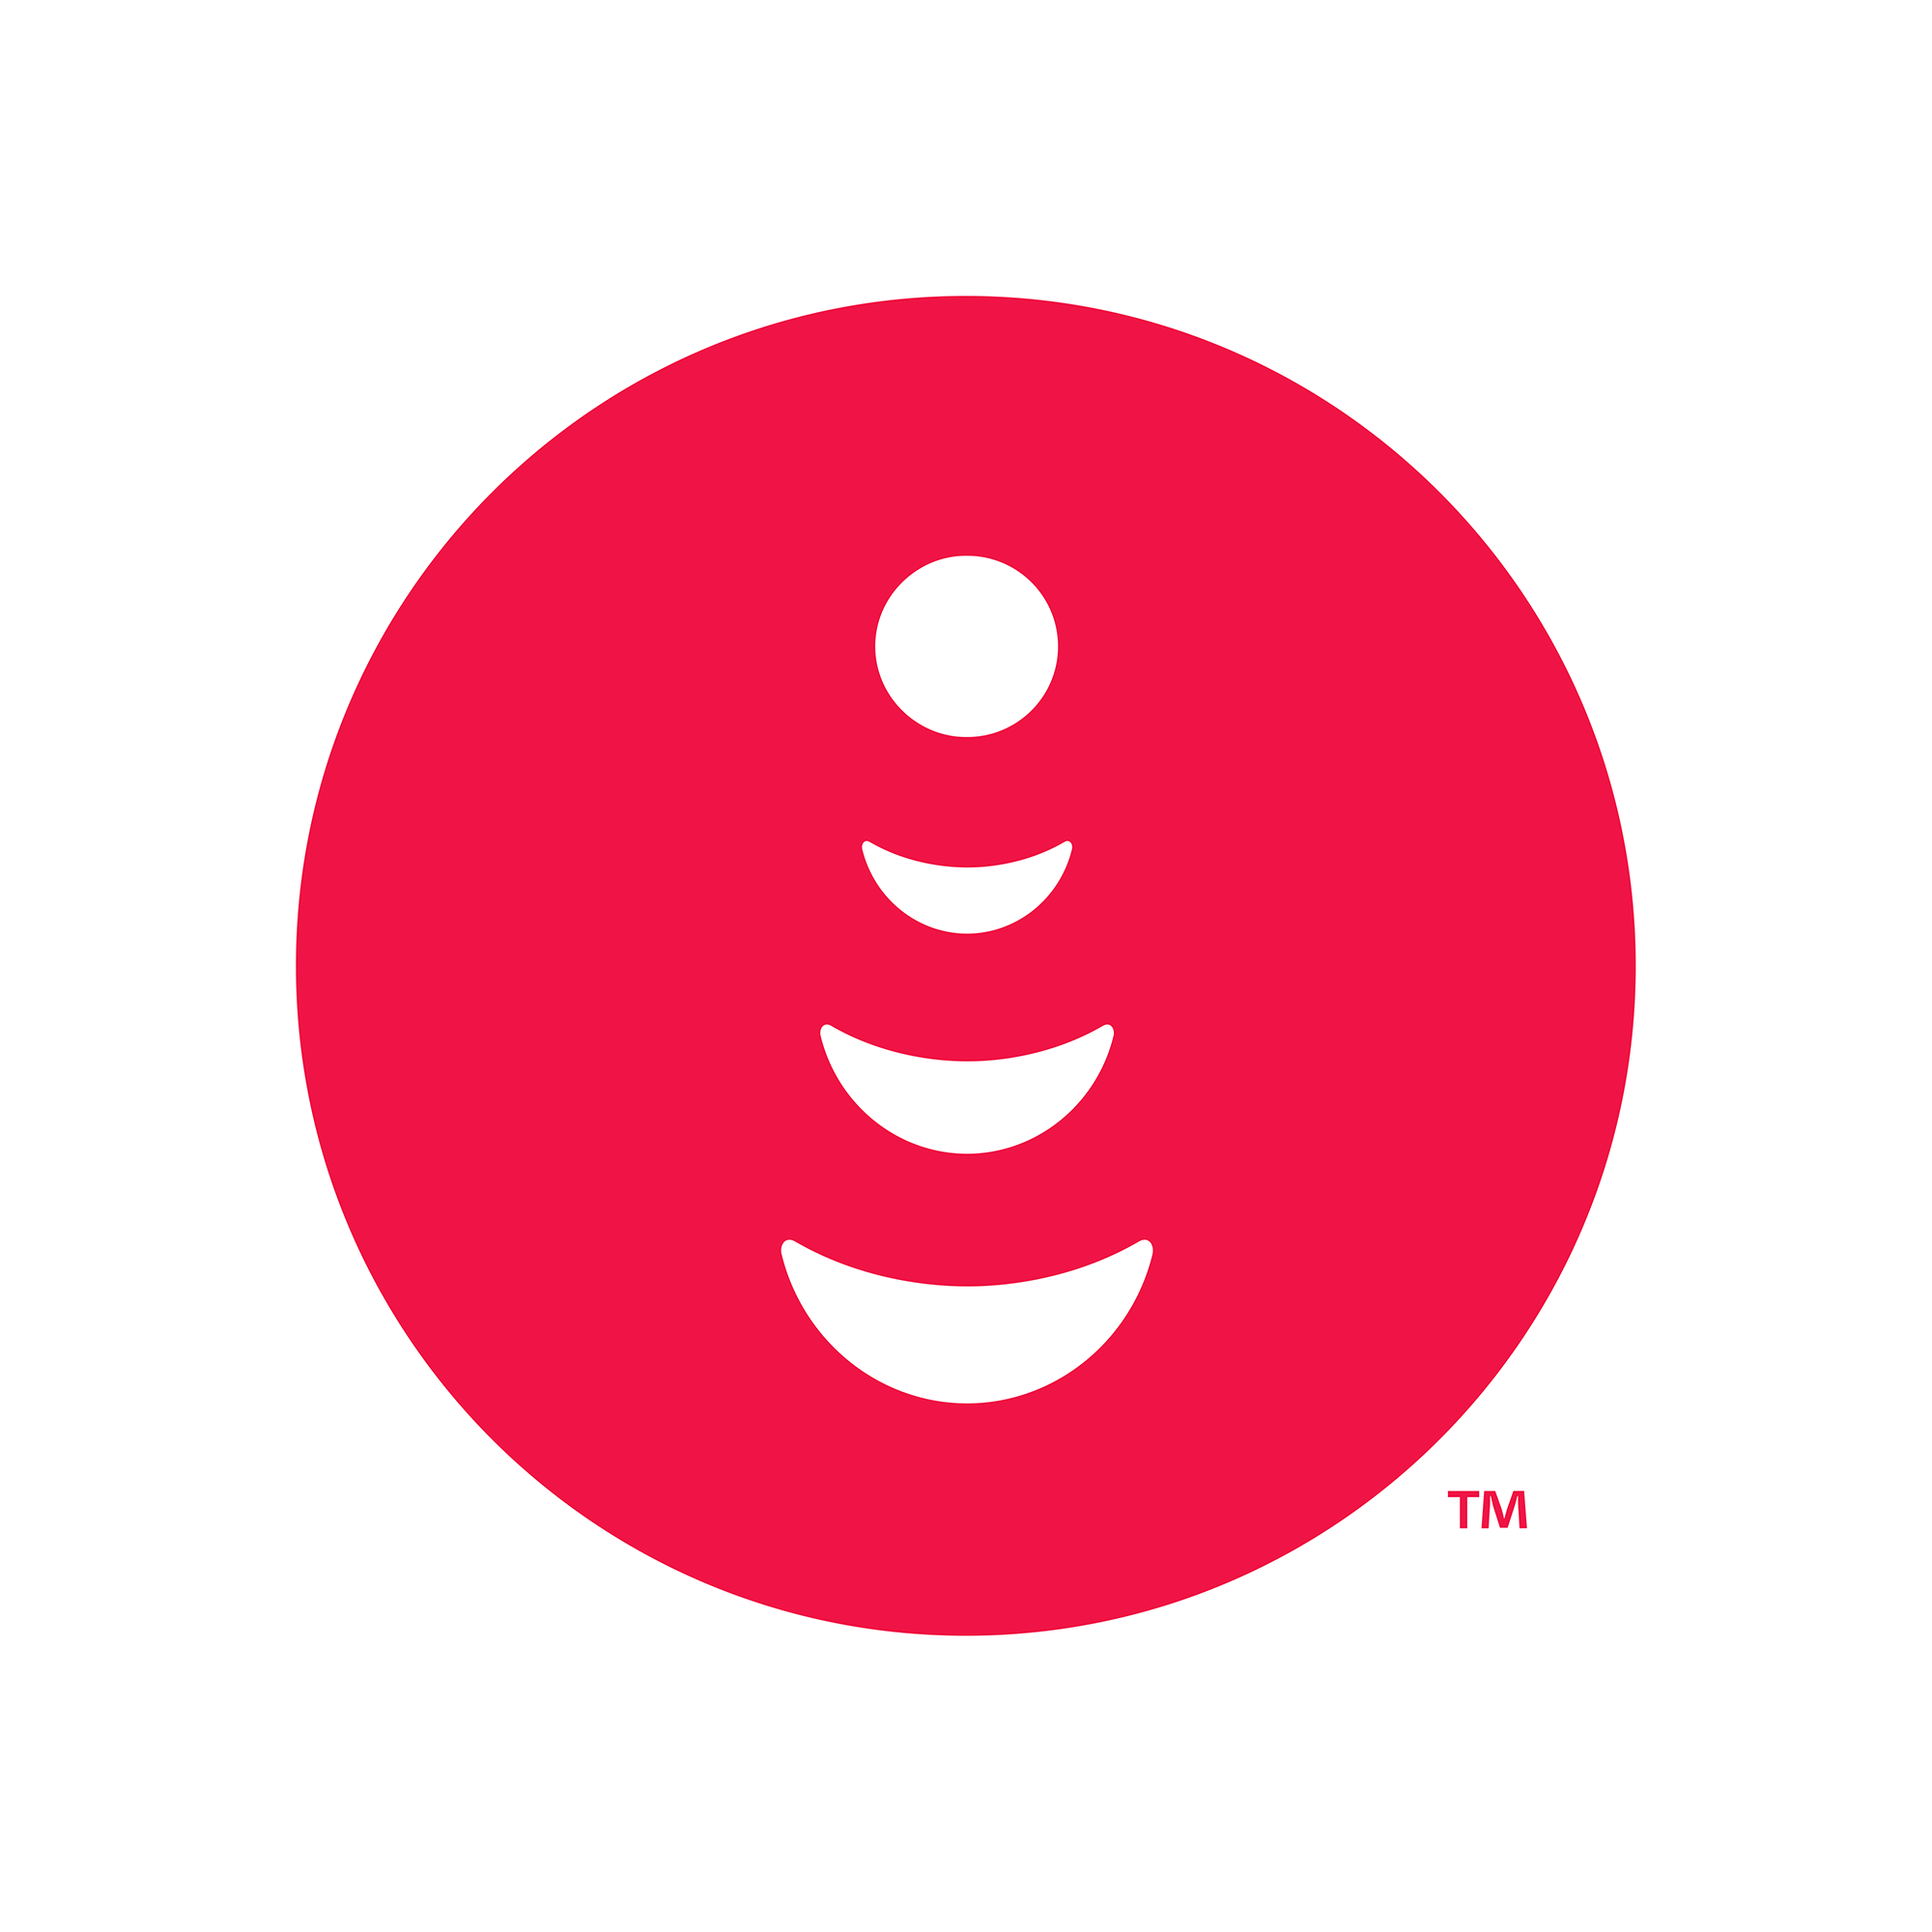 Follow-up: New Logo and Identity for DISH done In-house